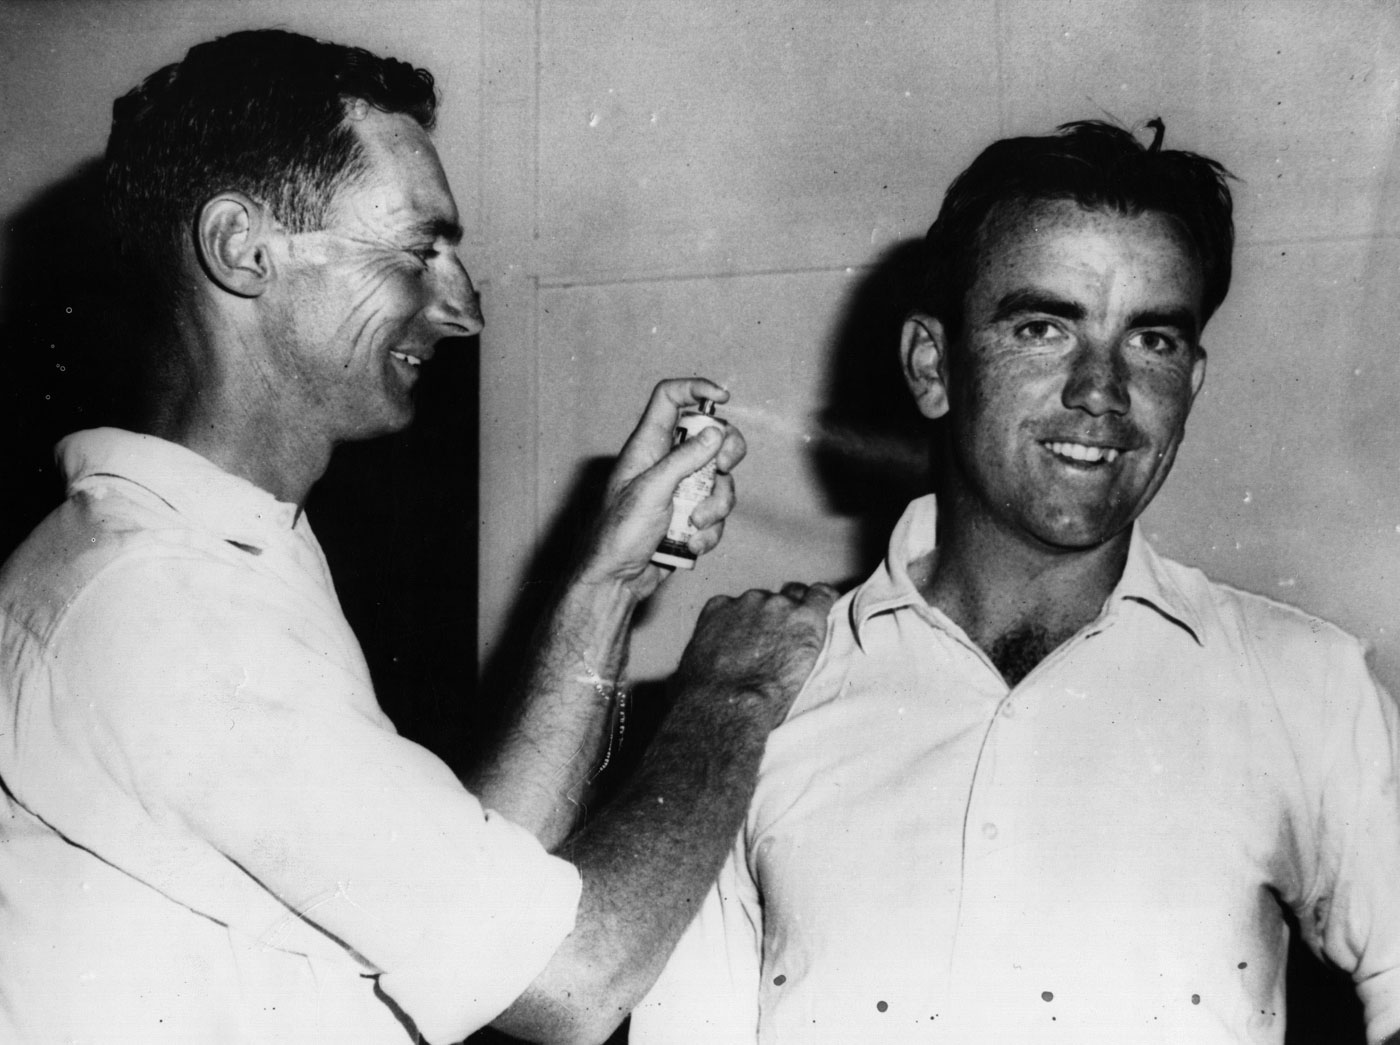 Brian Booth (left) got his first gig as Test captain in Allan's debut match, after the latter had given Bob Simpson (right) an injury during a Shield match